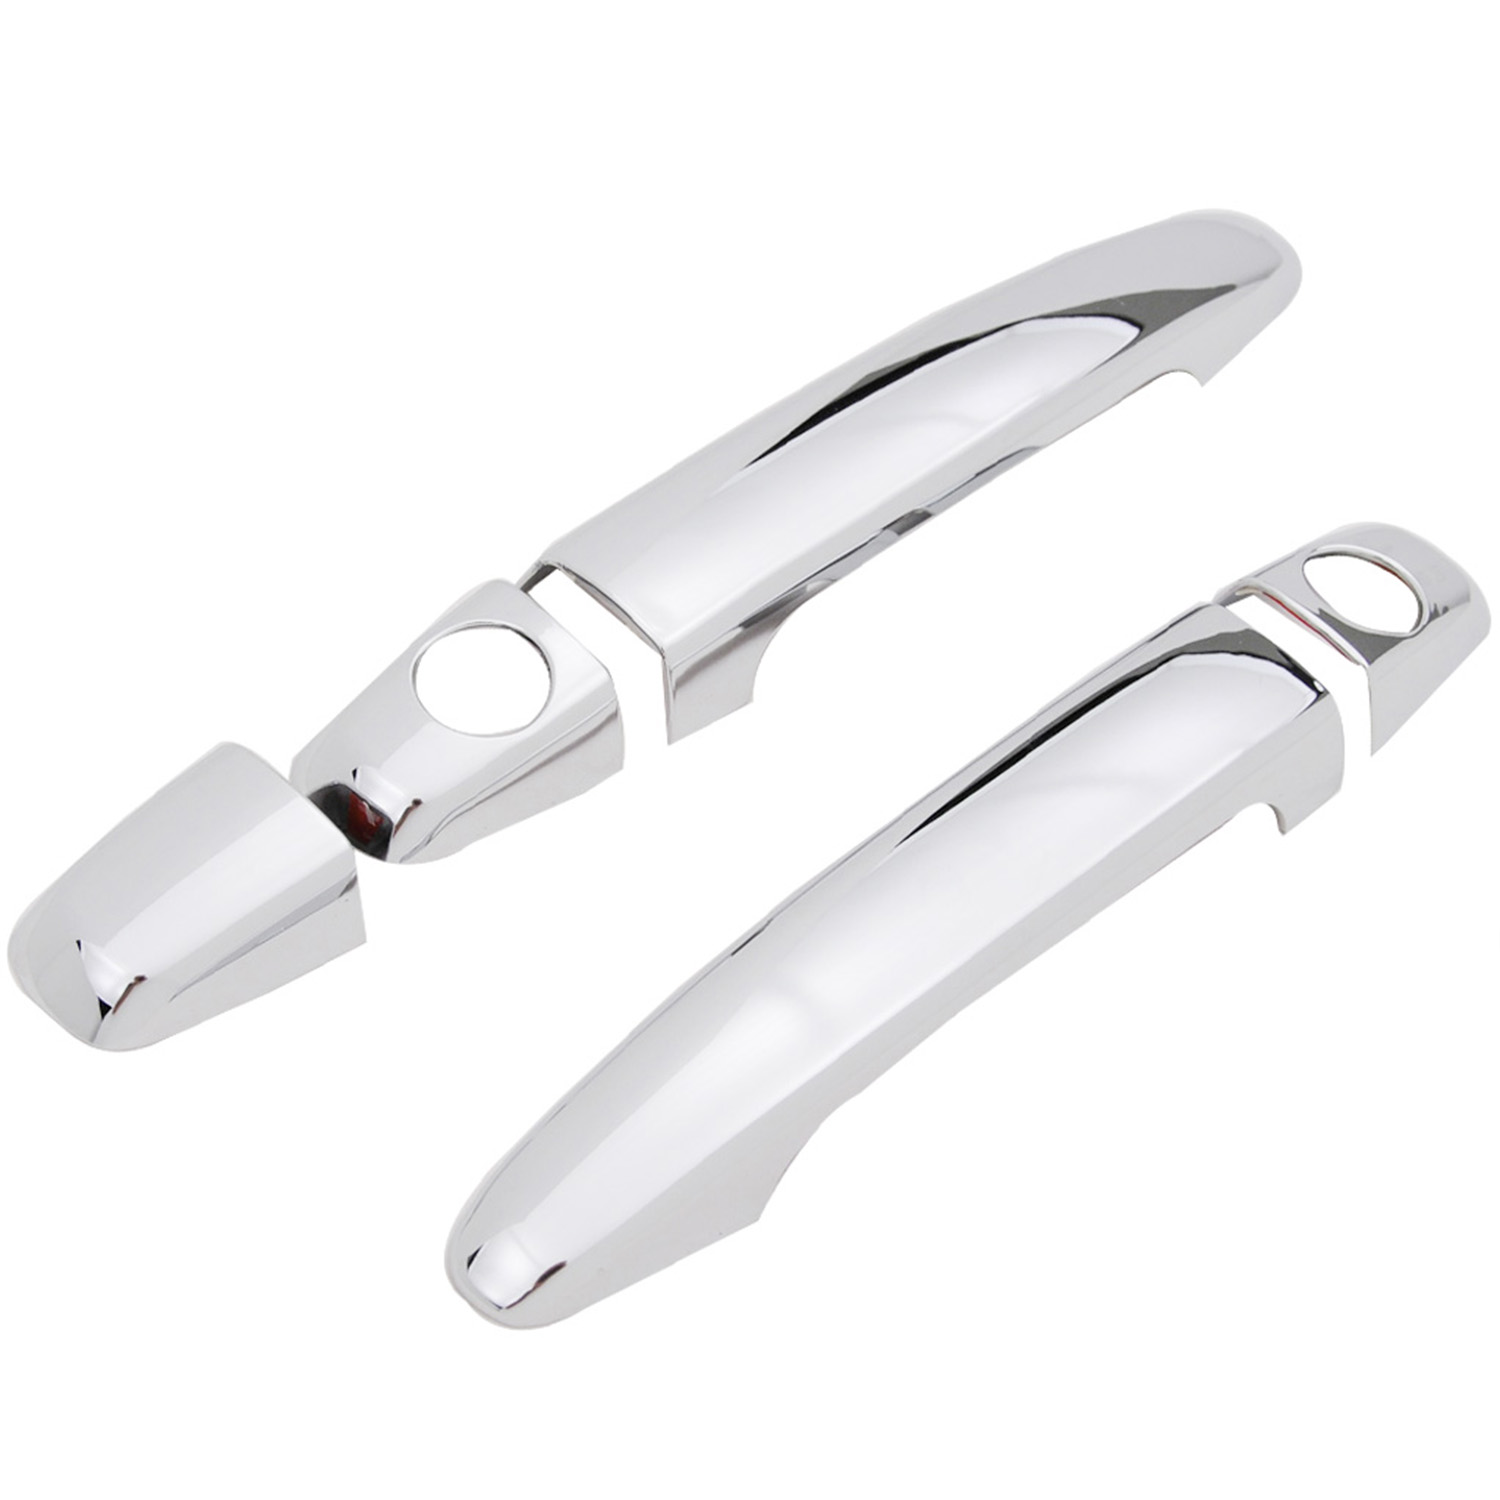 FOR TOYOTA TACOMA 05-15 CHROME 4 DOORS HANDLES COVERS W//OUT SMART KEYHOLE